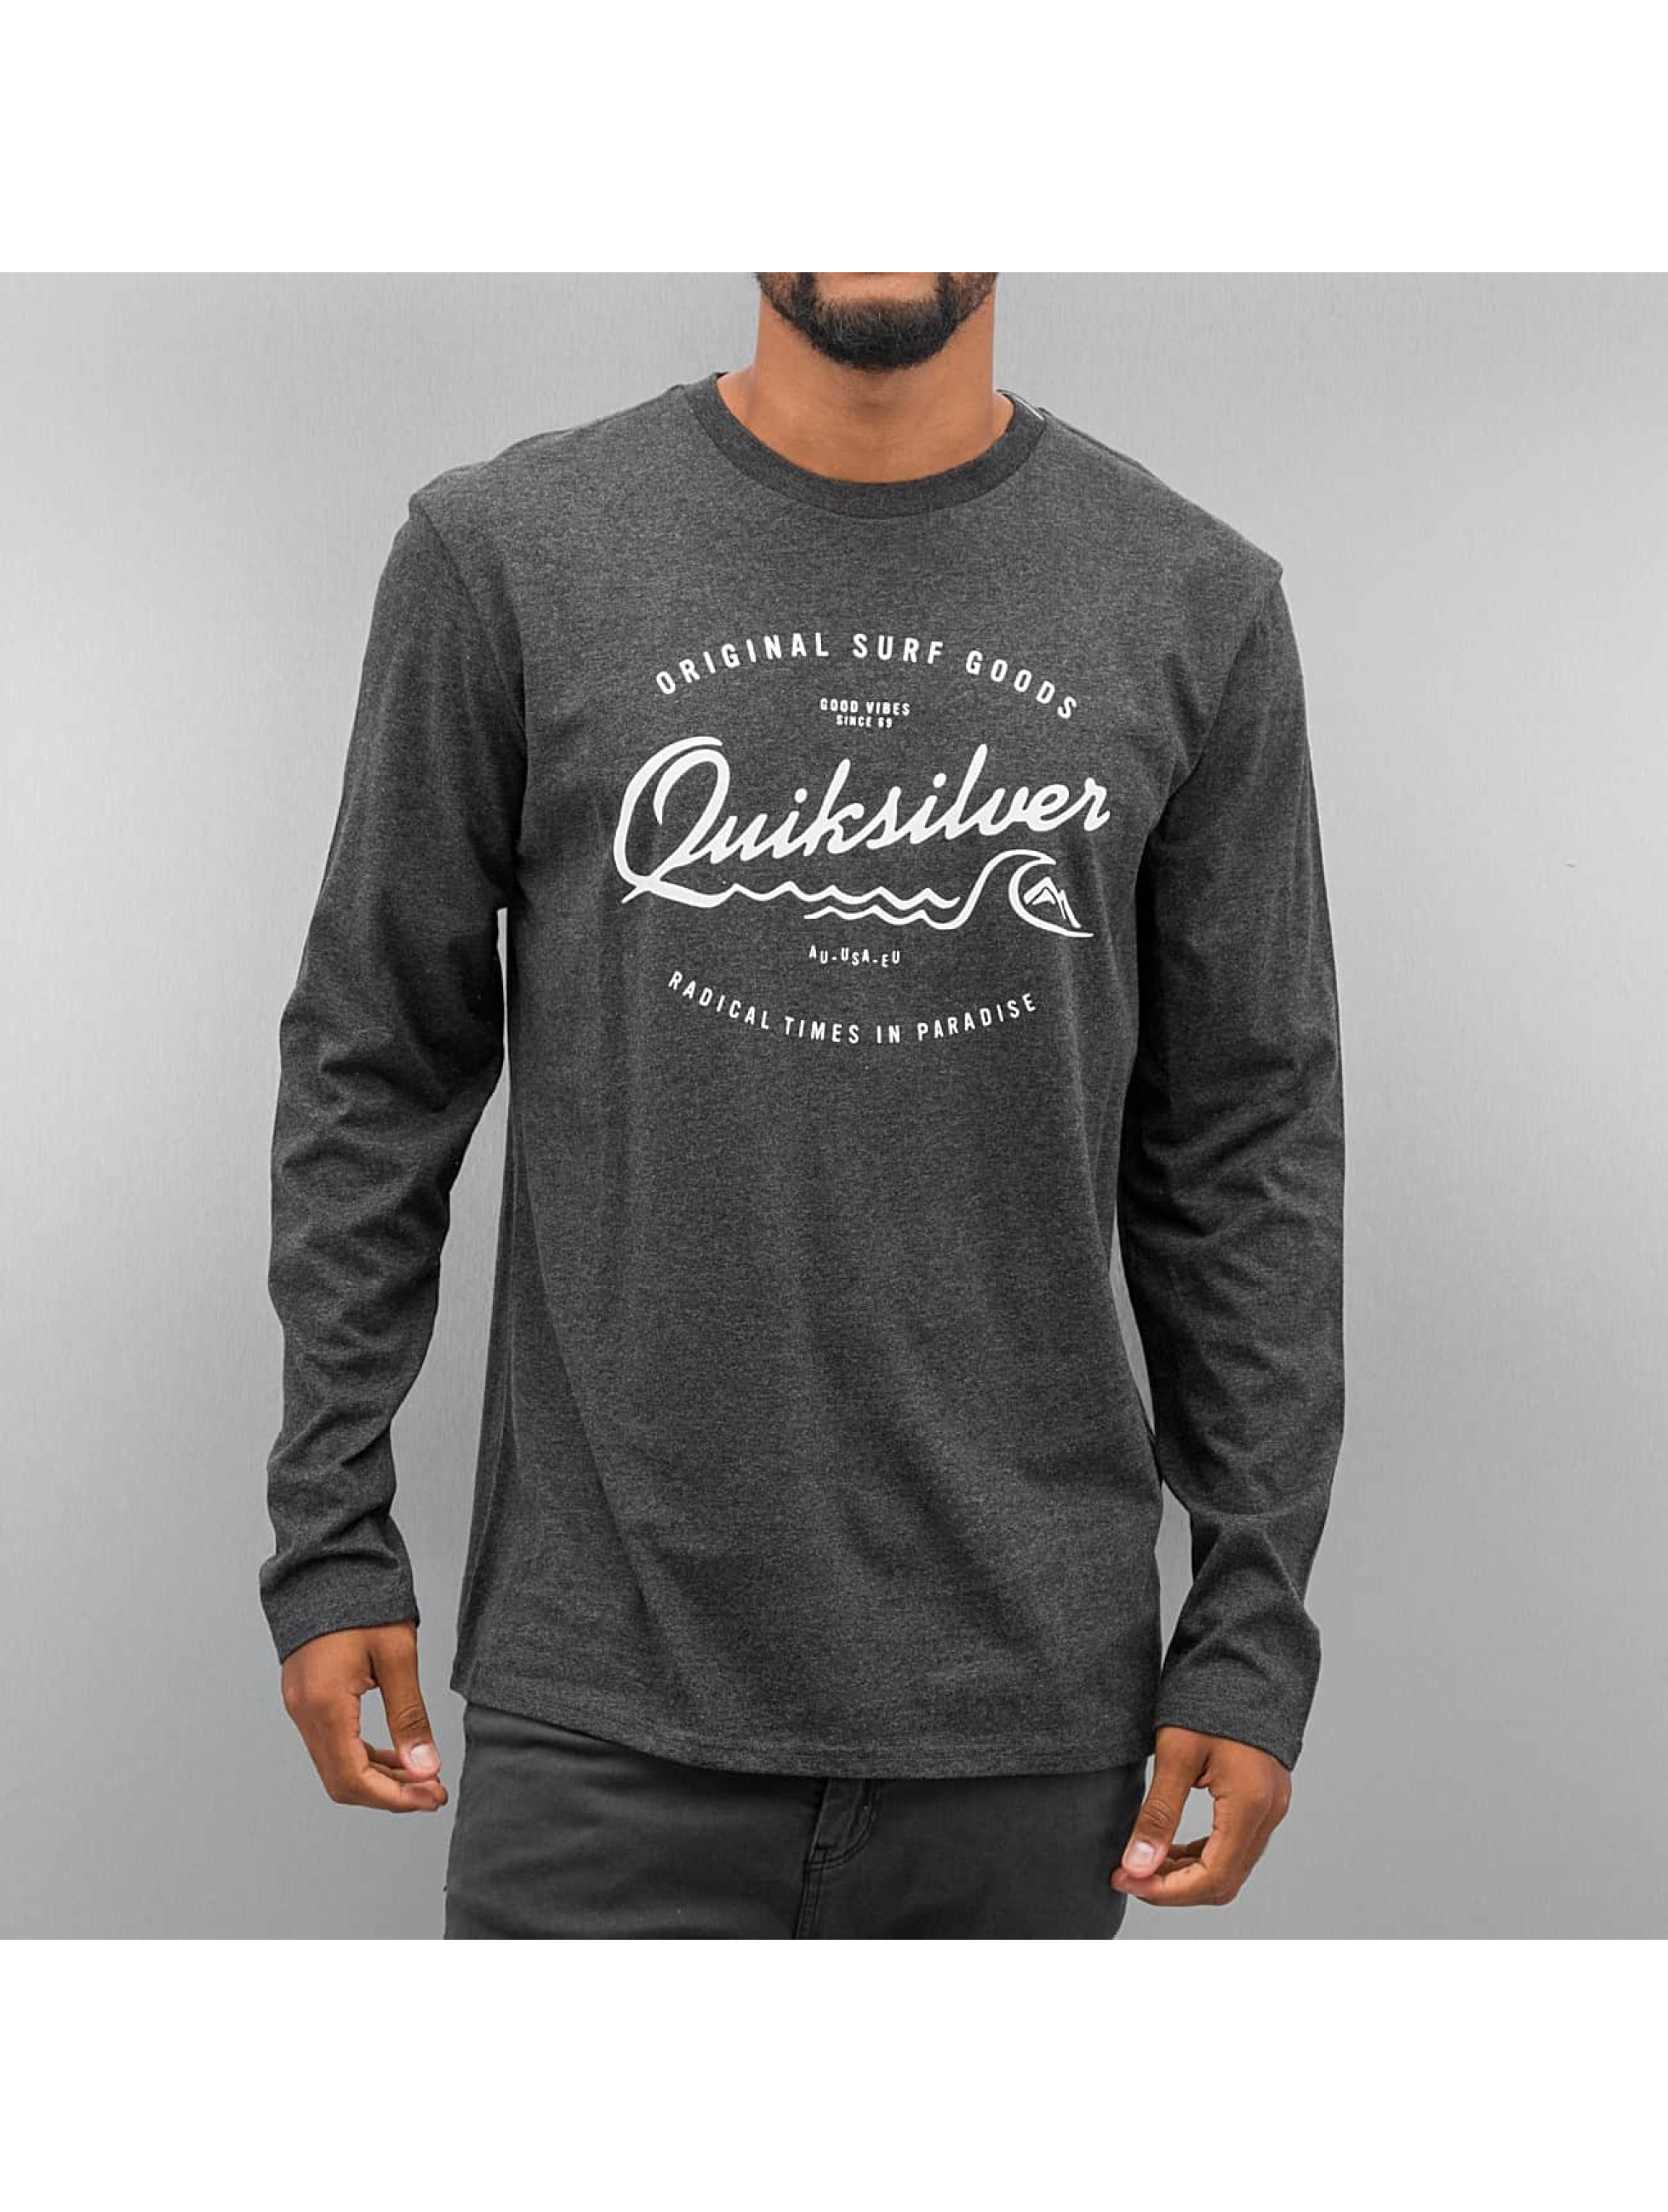 Quiksilver Водолазка Classic West Pier серый